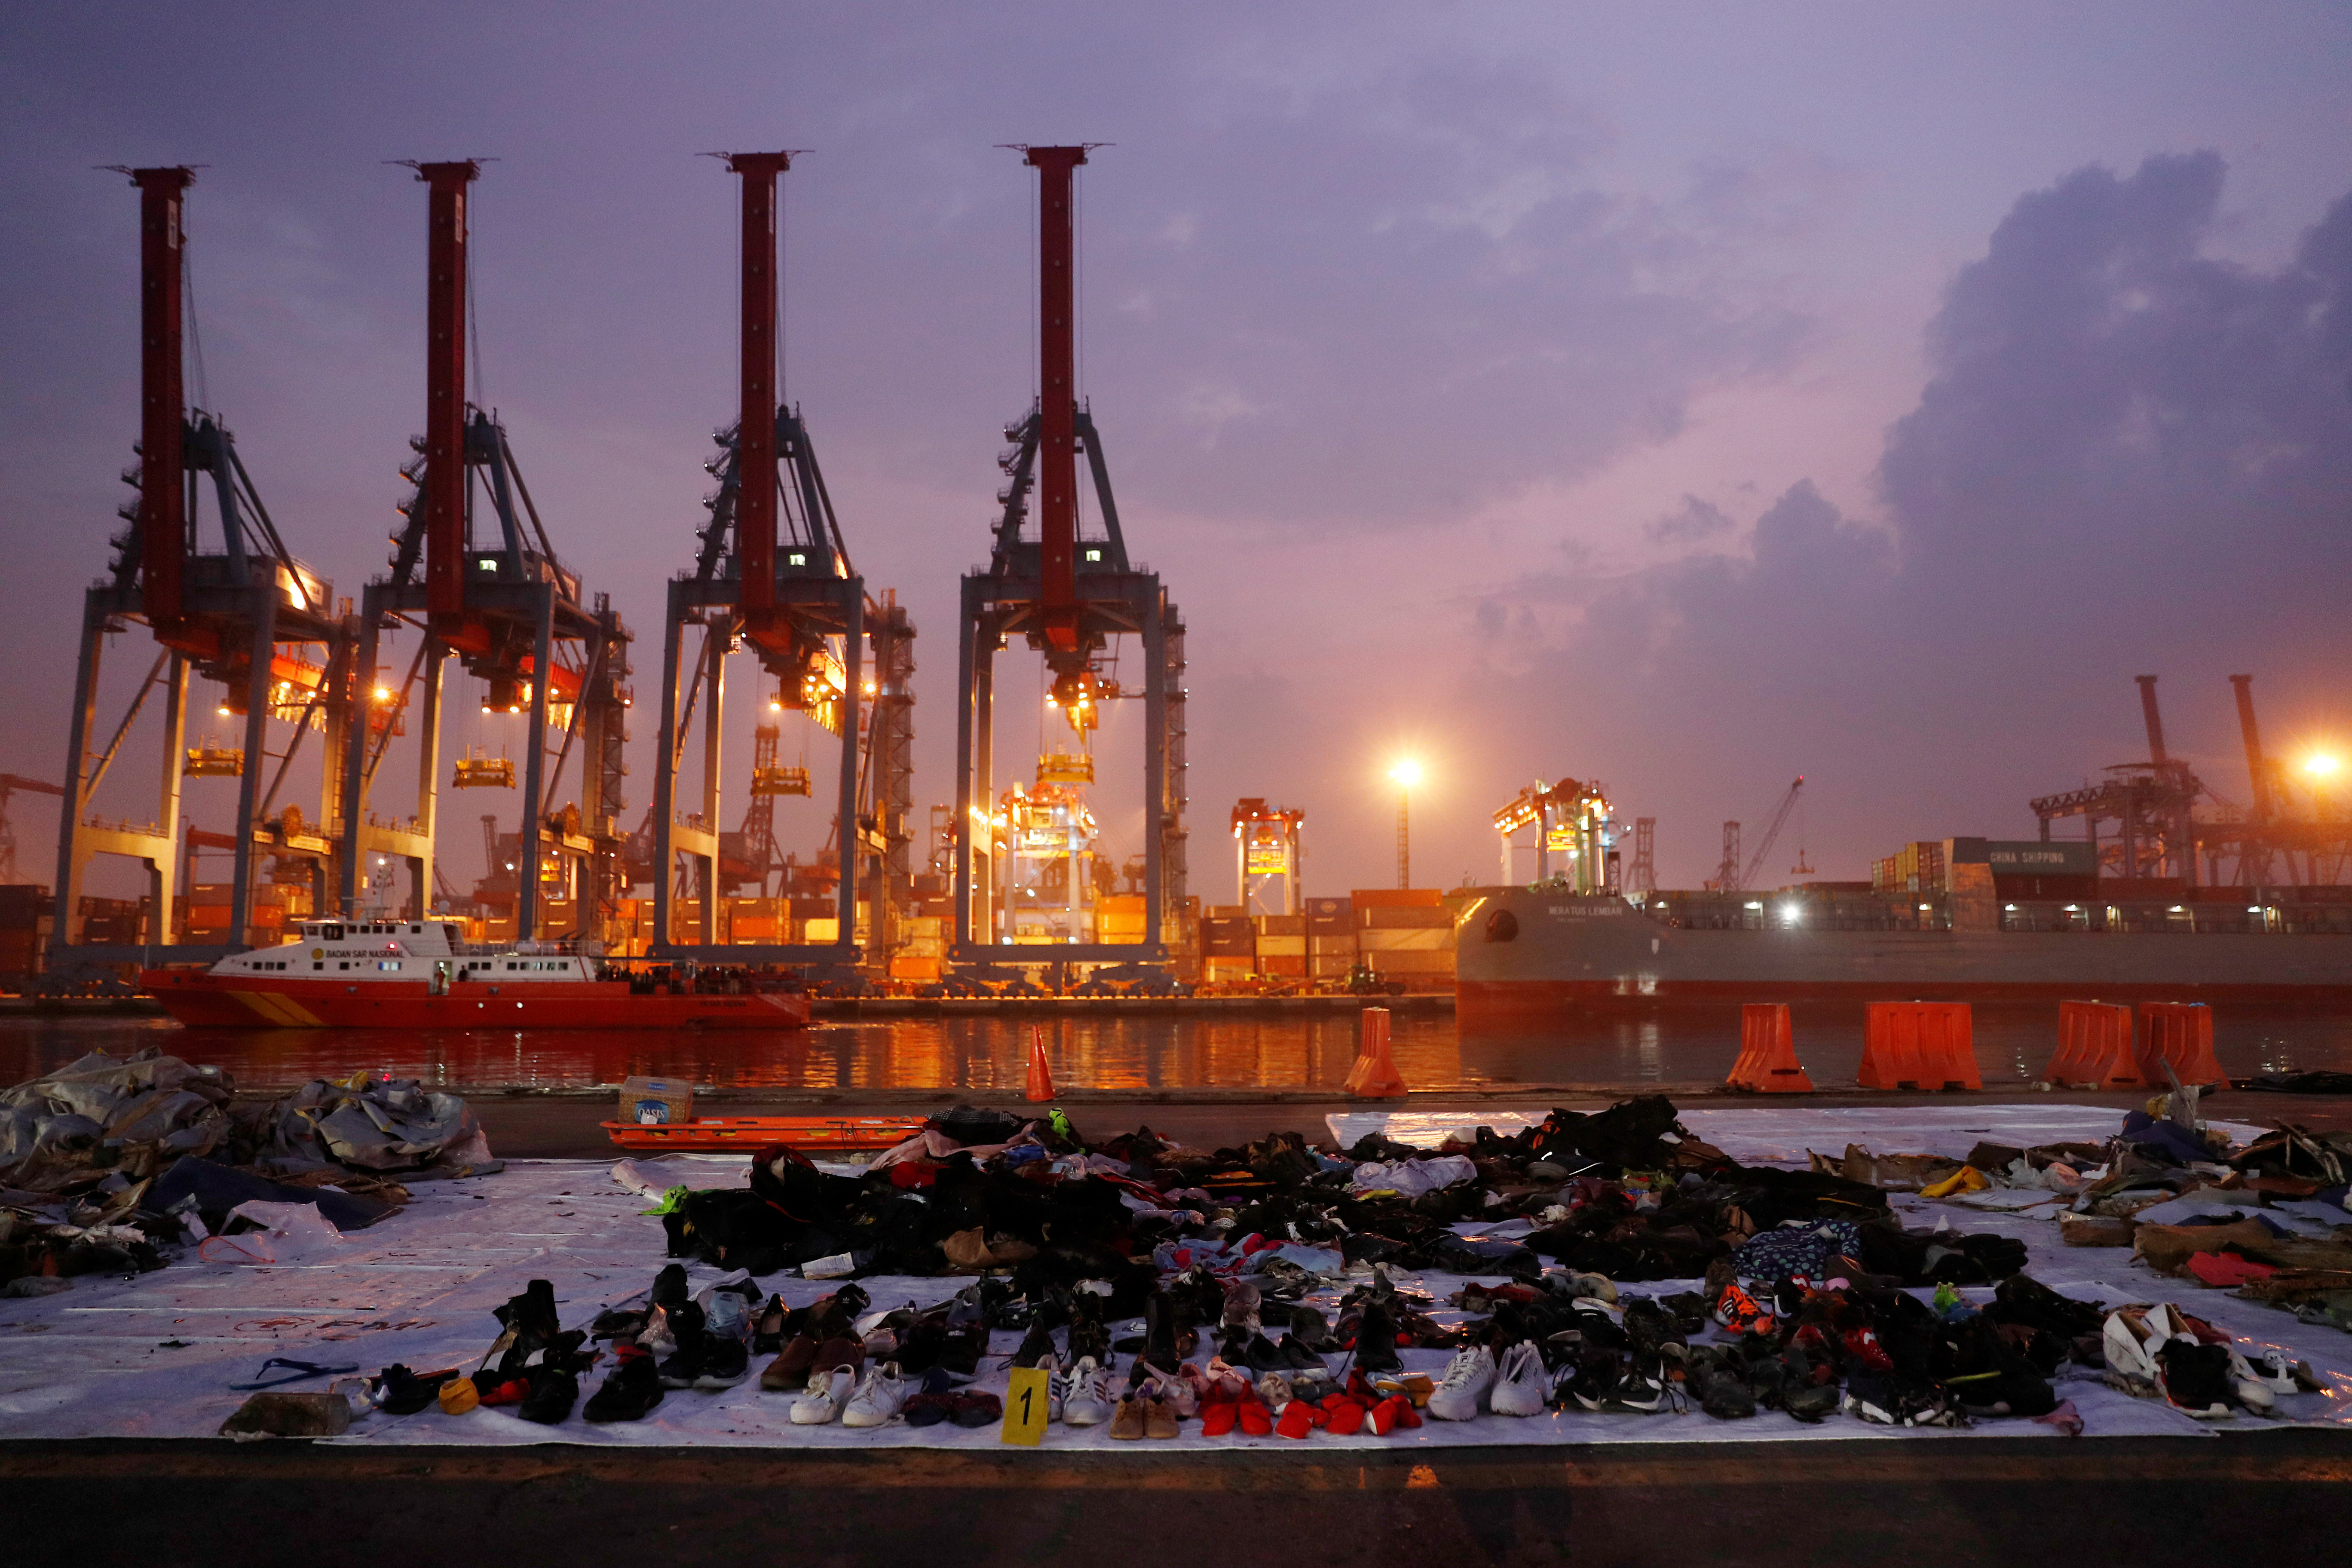 FILE PHOTO: Recovered belongings believed to be from the crashed Lion Air flight JT610 are laid out at Tanjung Priok port in Jakarta, Indonesia, November 1, 2018. REUTERS/Edgar Su